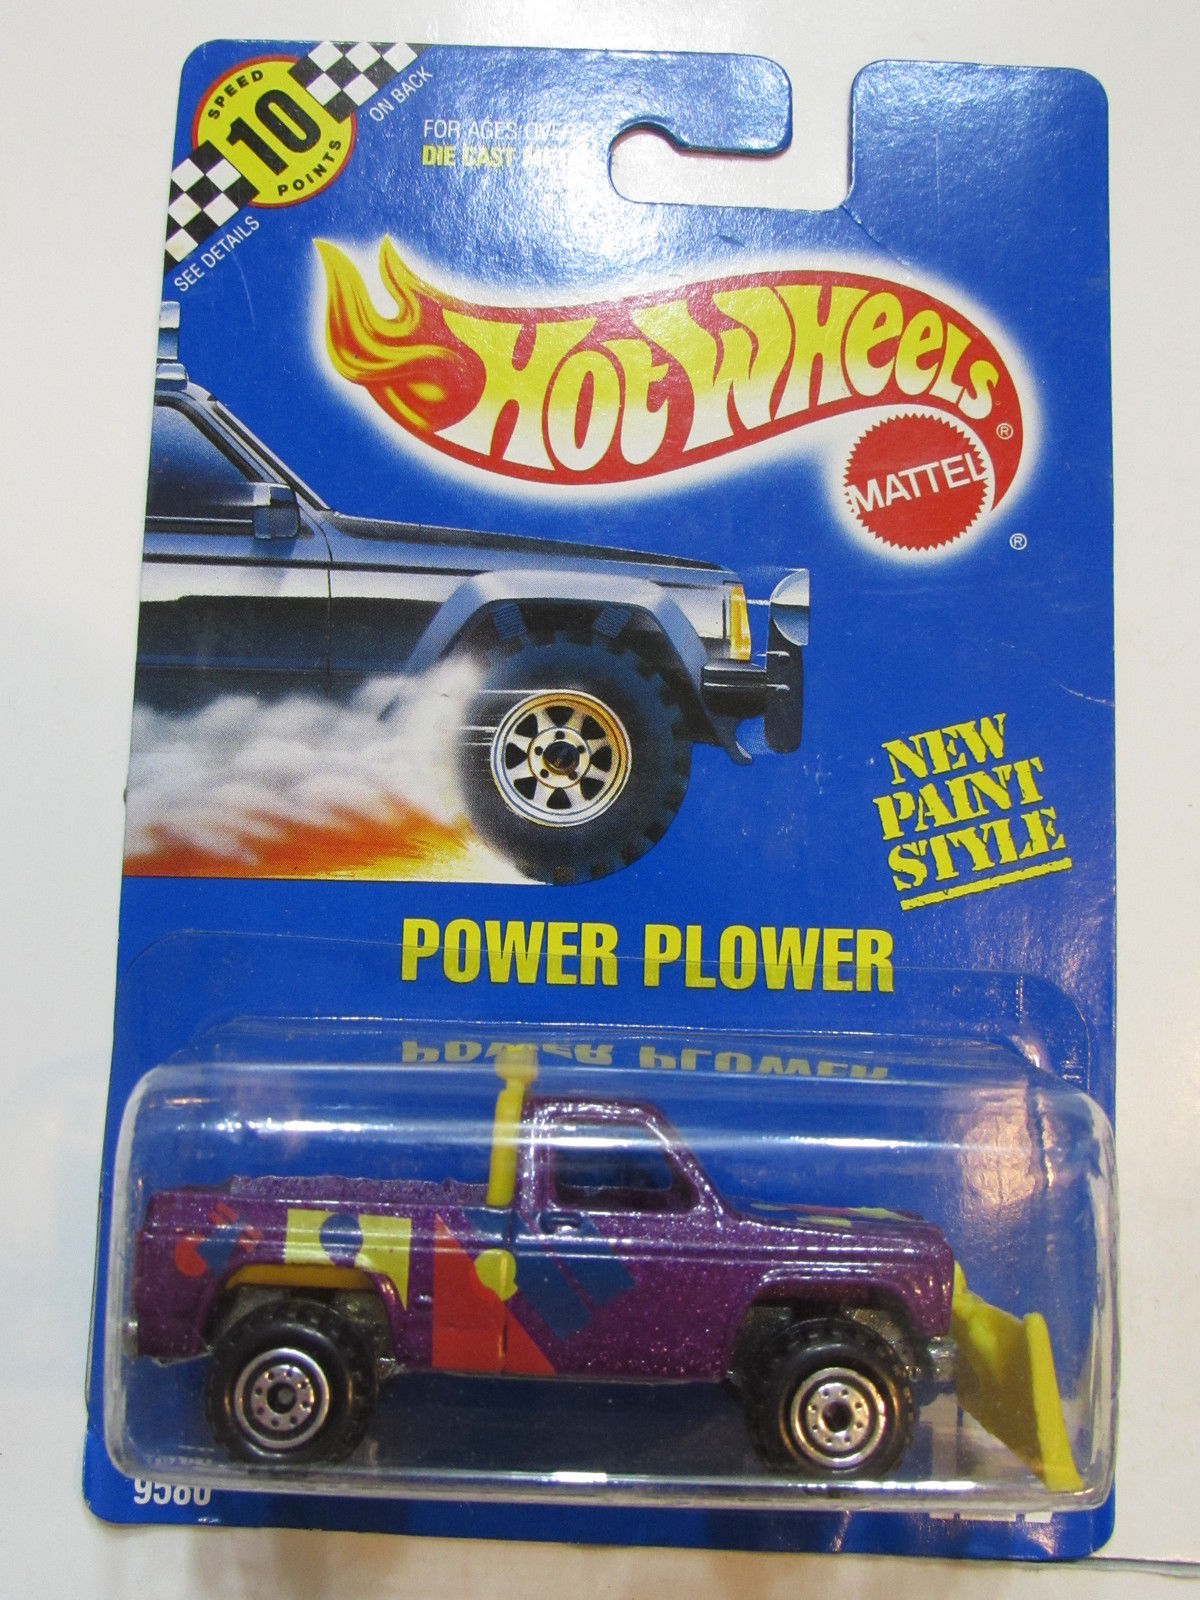 HOT WHEELS 1990 BLUE CARD NEW PAINT STYLE - POWER PLOWER #127